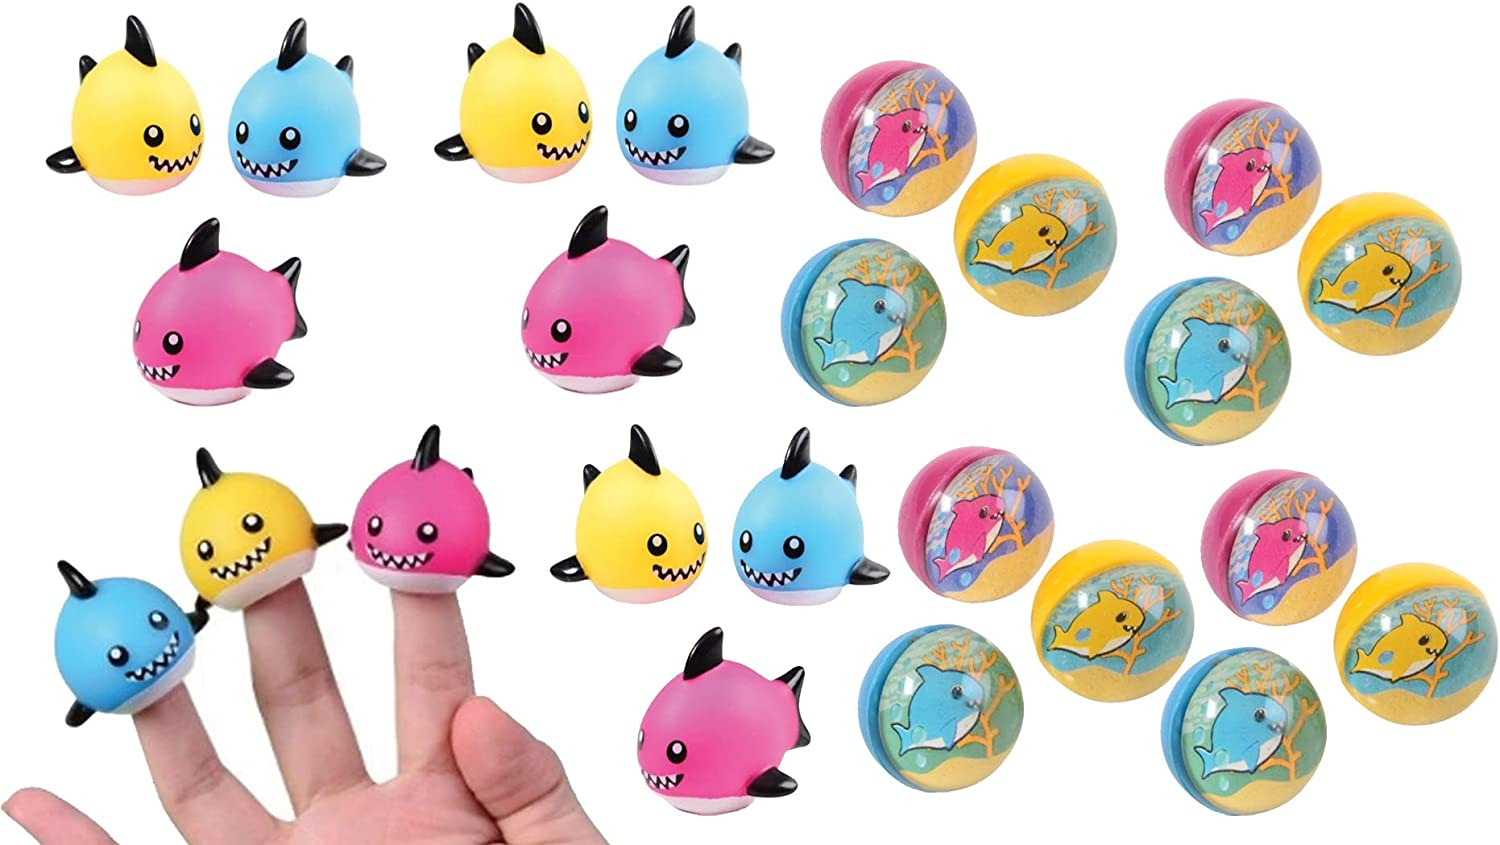 Little Shark Pup Finger Puppets and Rubber Bounce Ball Toy Favors Bundle for Kids Birthday Party or Baby Shower (24 Pieces).